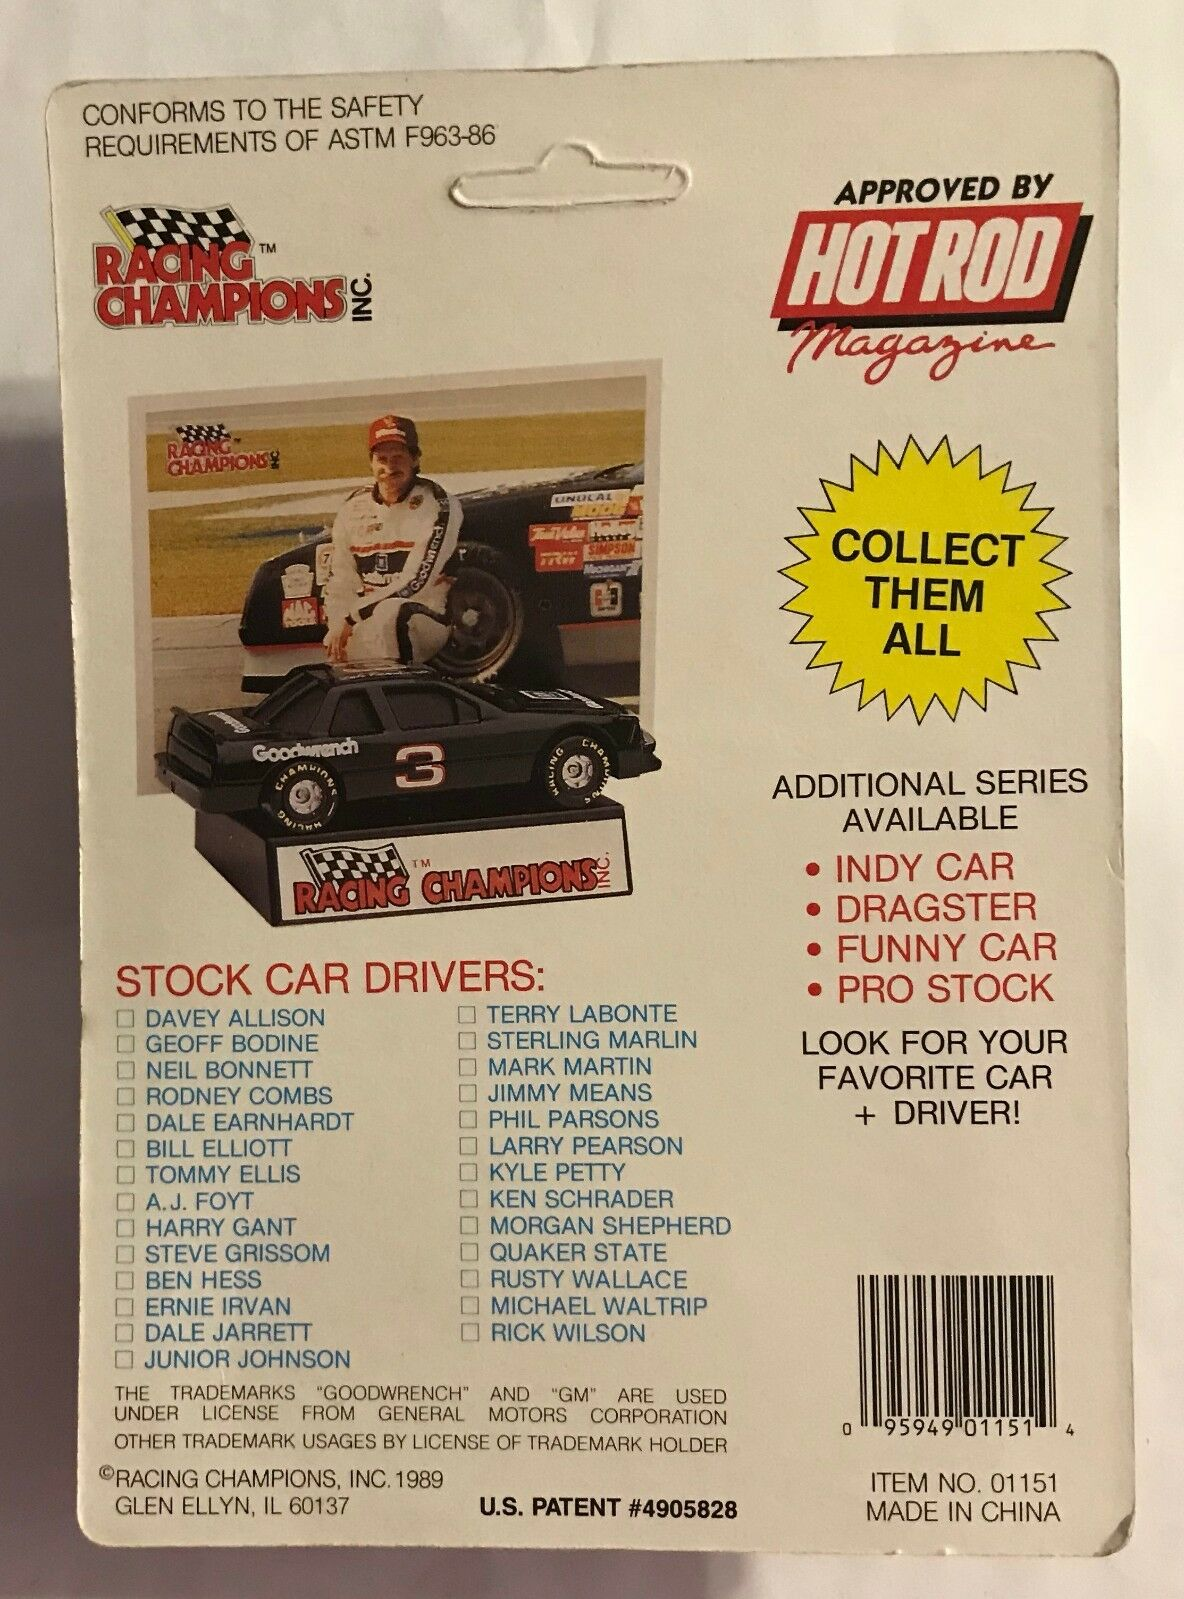 1989 RUSTY WALLACE  SERIES 1- RUBBER RUBBER RUBBER TIRE -  NEW PONTIAC  a83caa